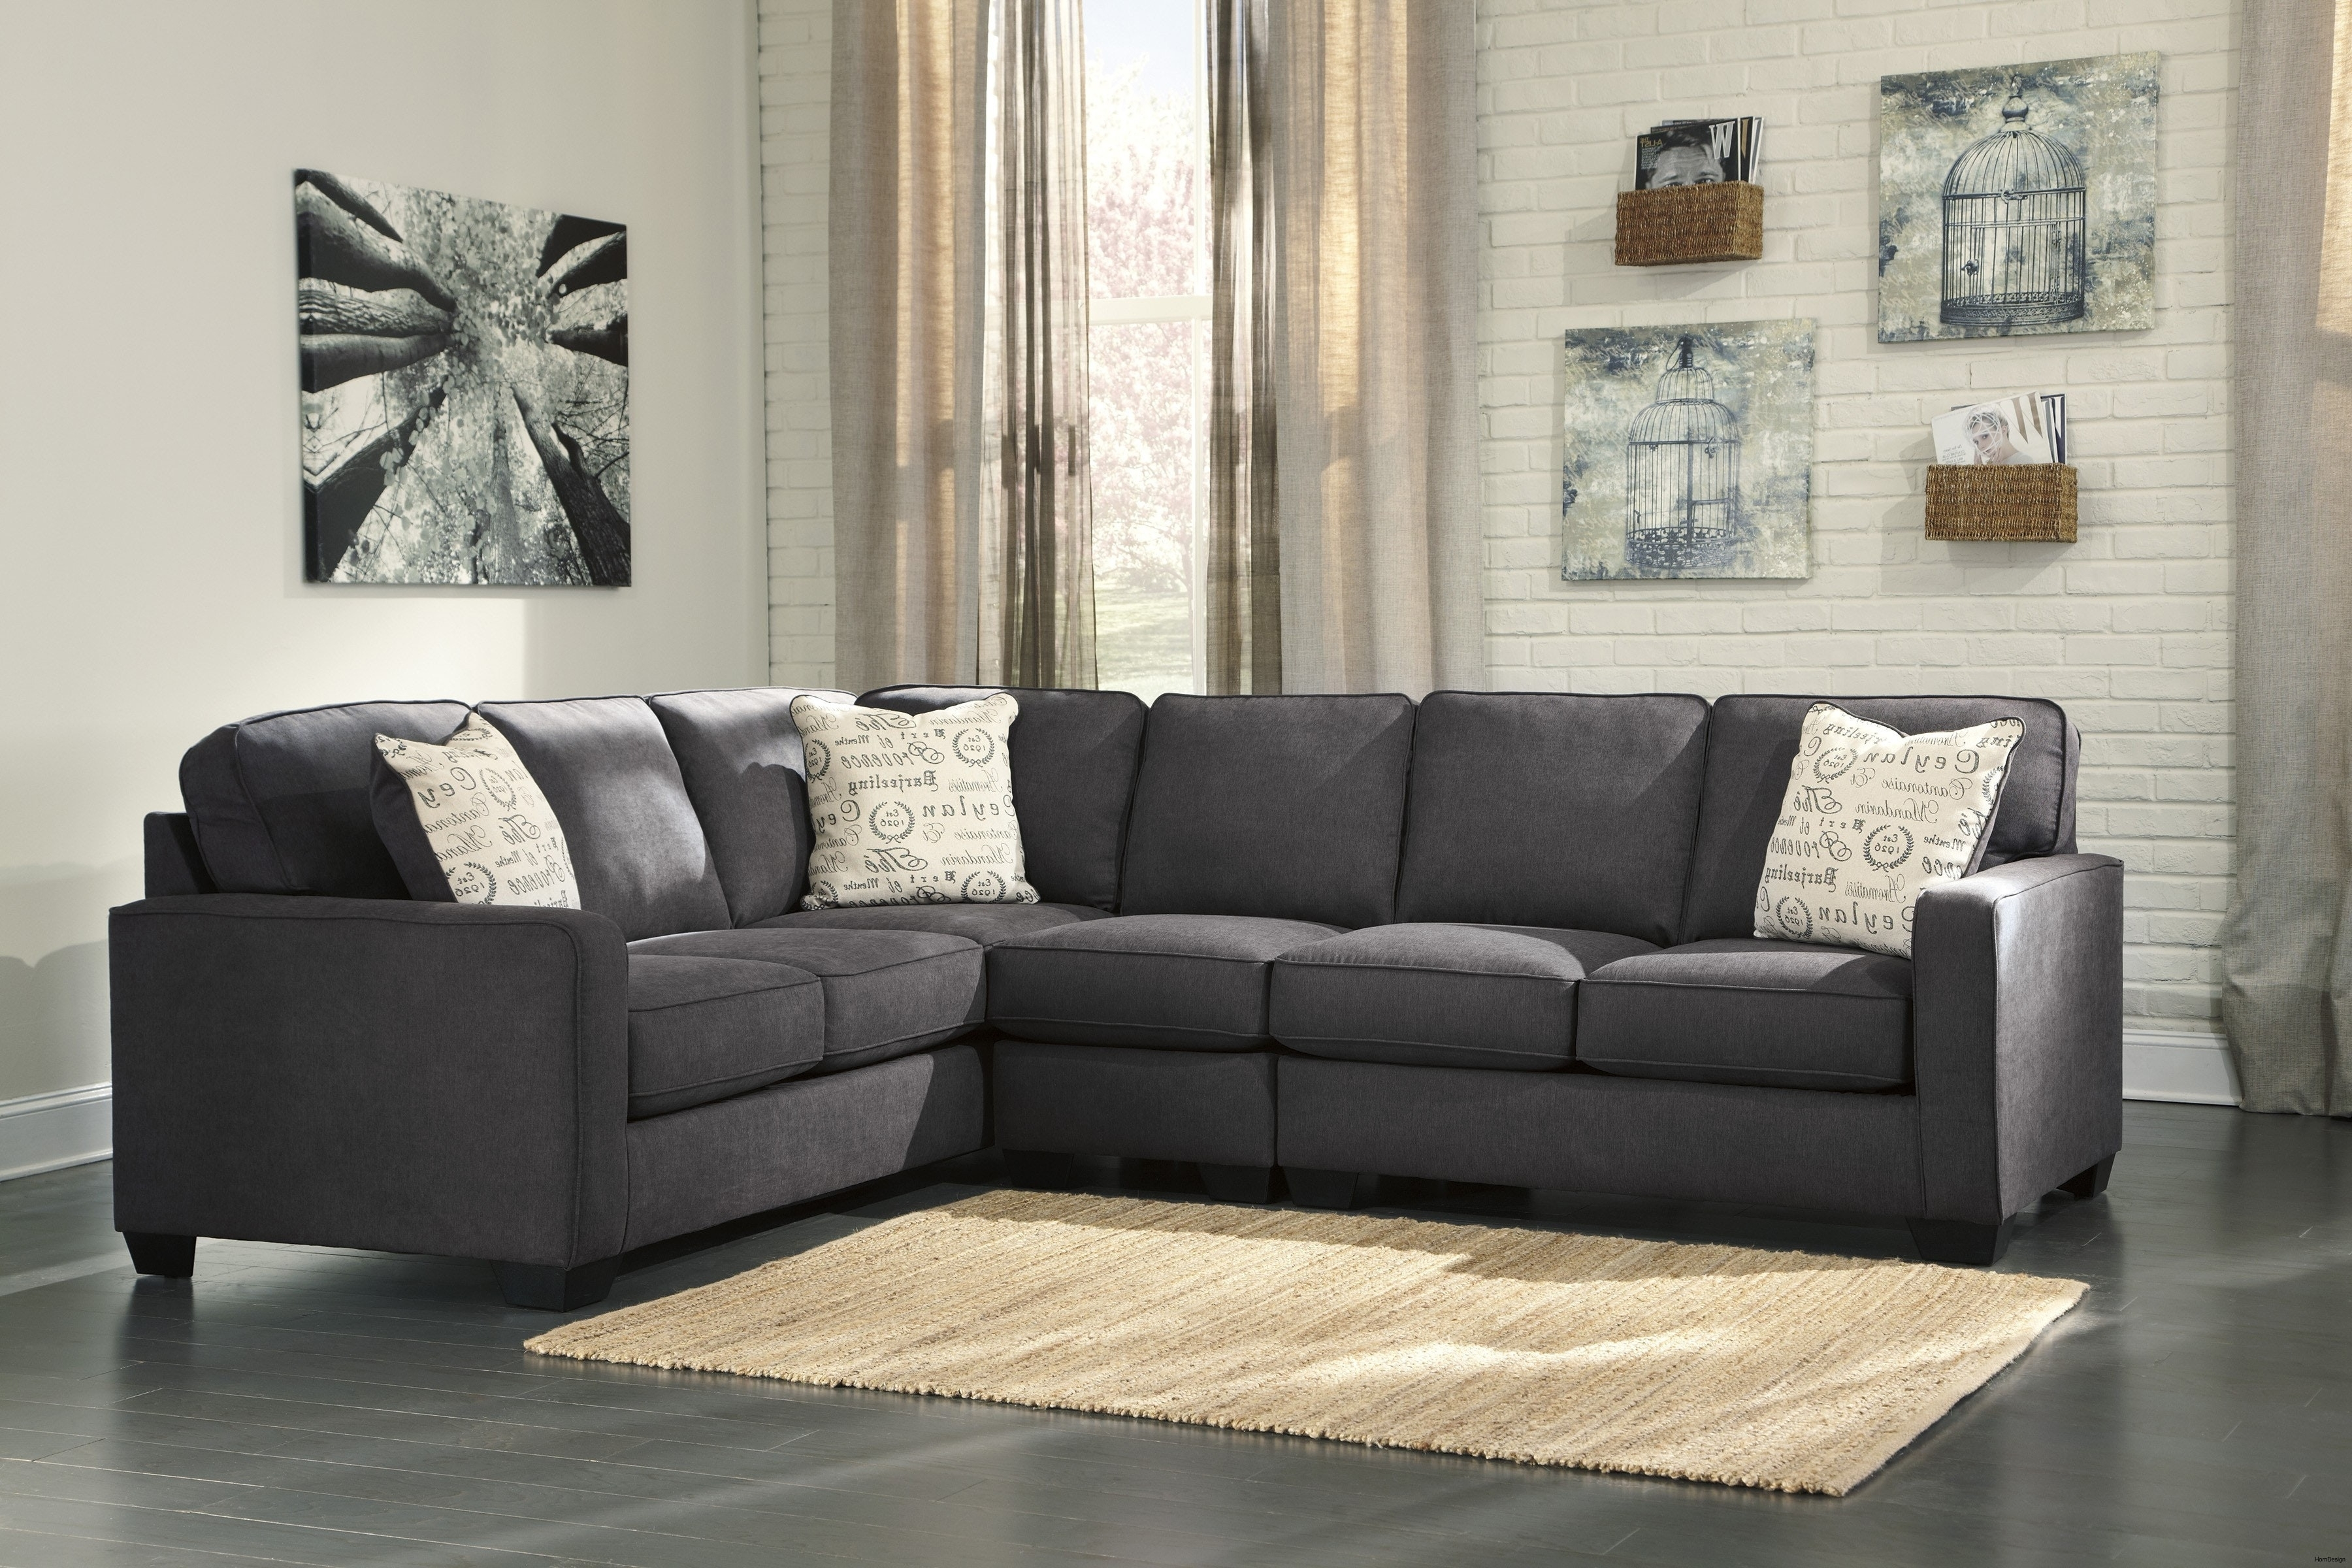 3 Piece Sectional Sofa With Chaise Reviews | Baci Living Room Pertaining To Malbry Point 3 Piece Sectionals With Raf Chaise (View 20 of 25)